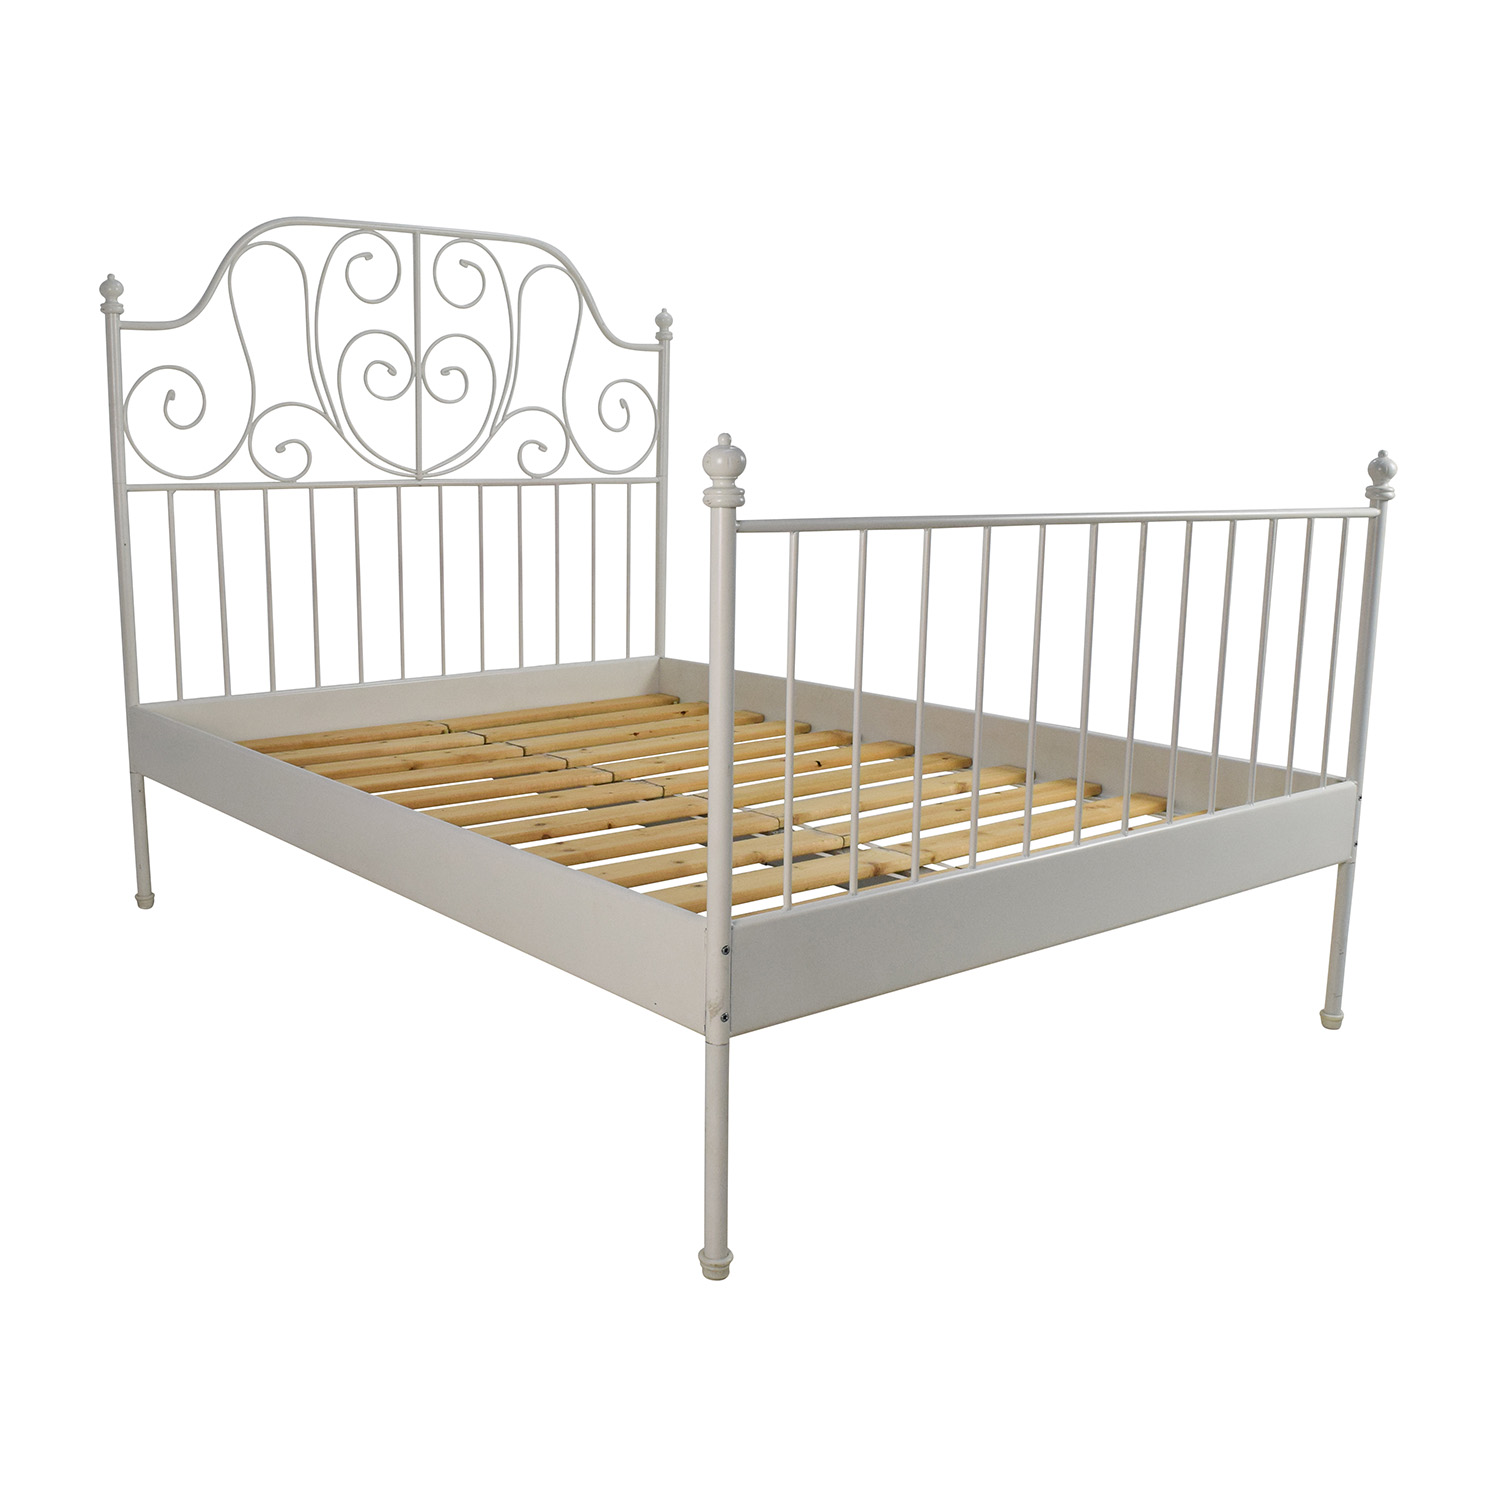 Ikea full size bed for Full size bed frame